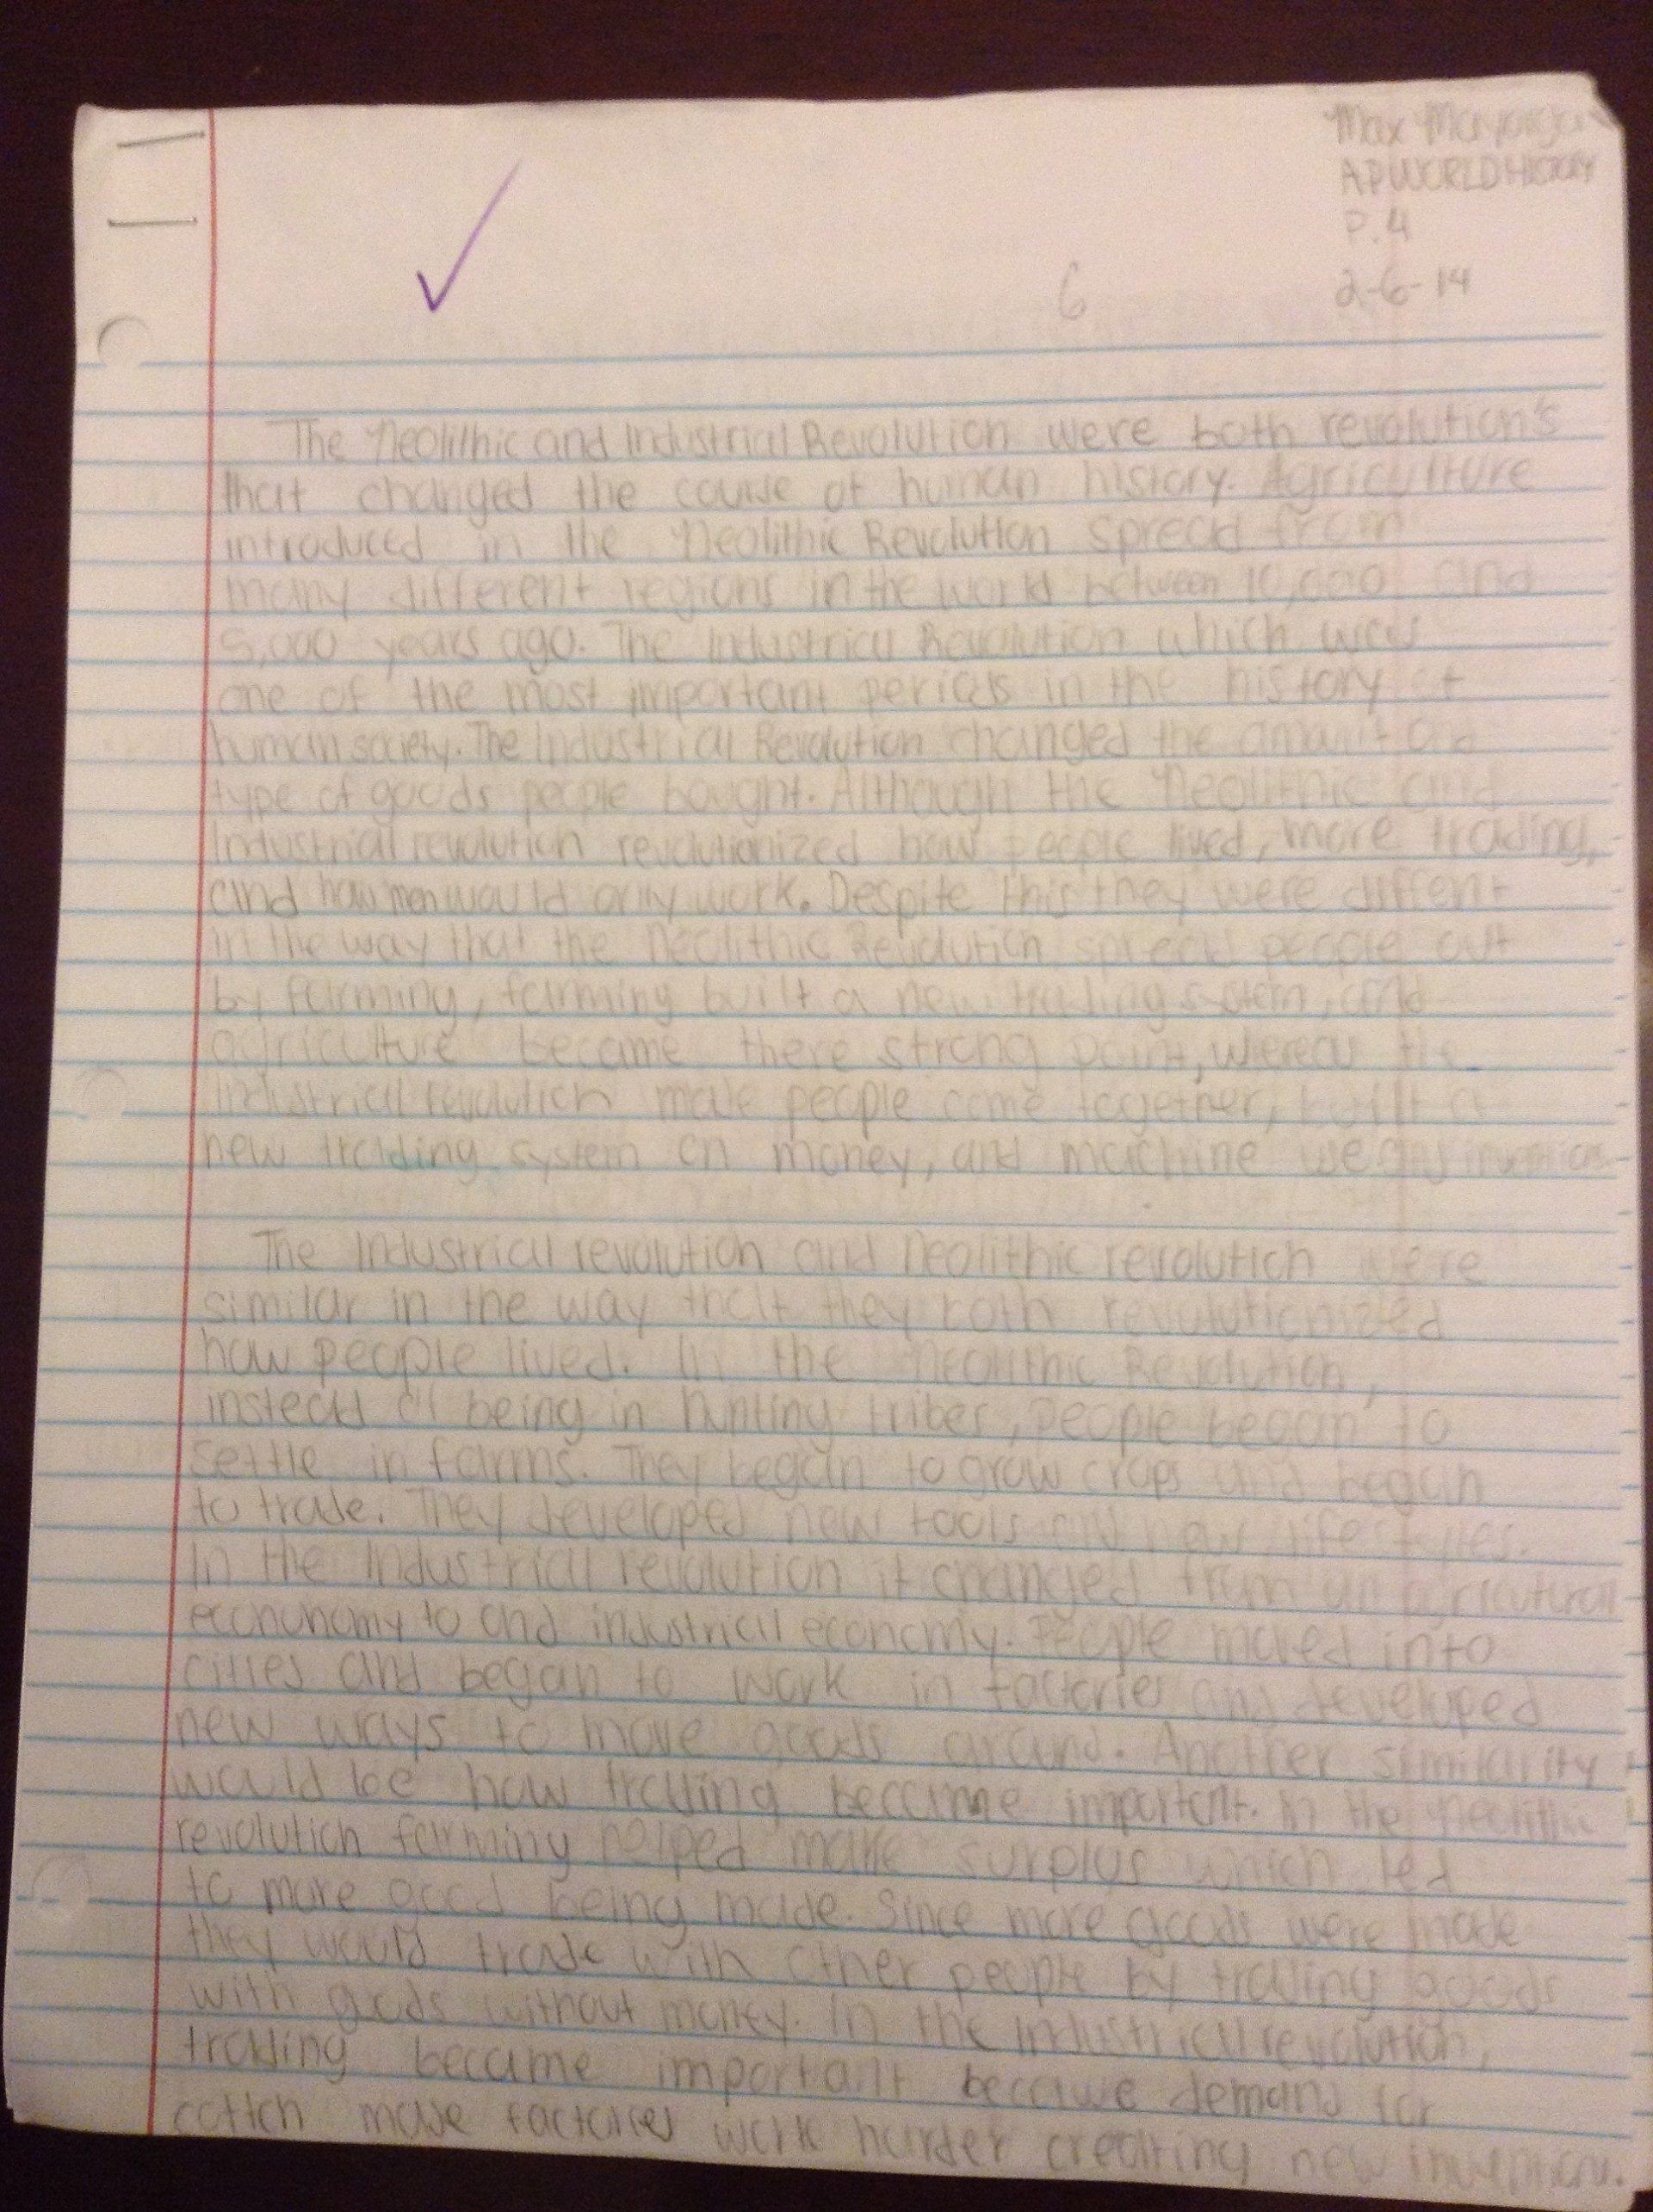 002 Image2010 Neolithic Revolution Essay Fearsome Turning Point Thematic Dbq 1920